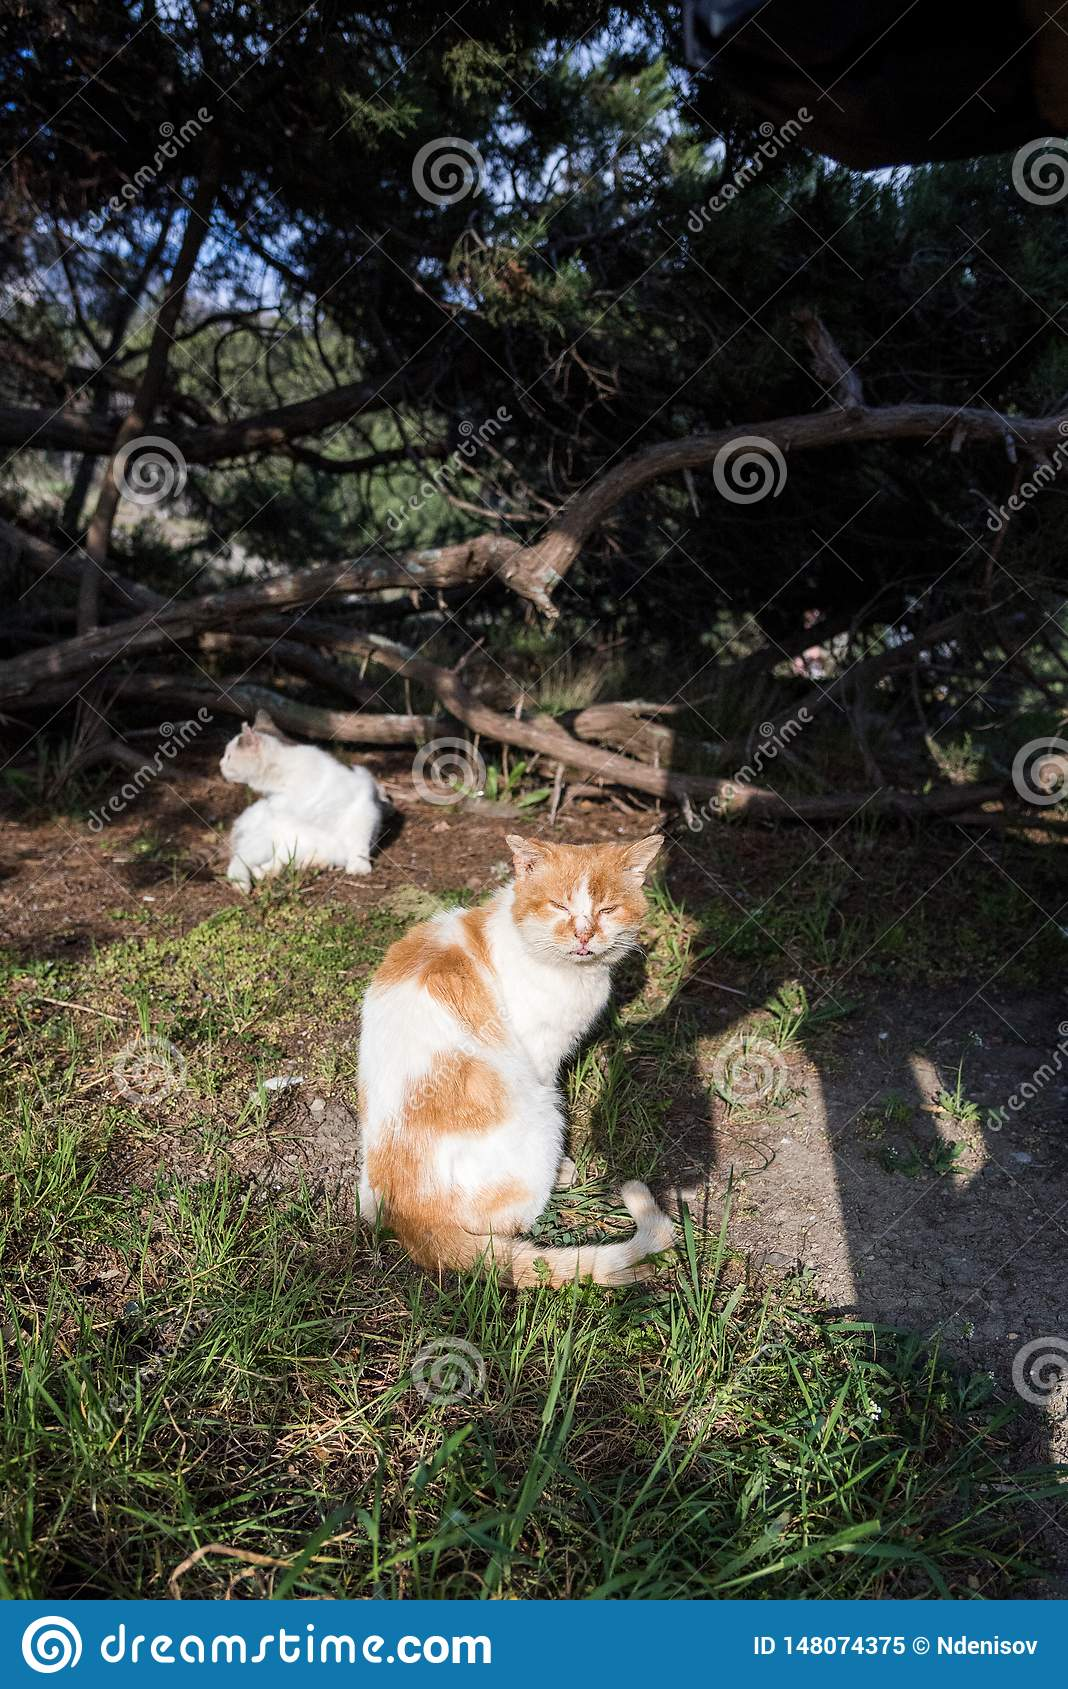 Wild homeless ragged cats walk in nature on the southern coast of the Crimea peninsula